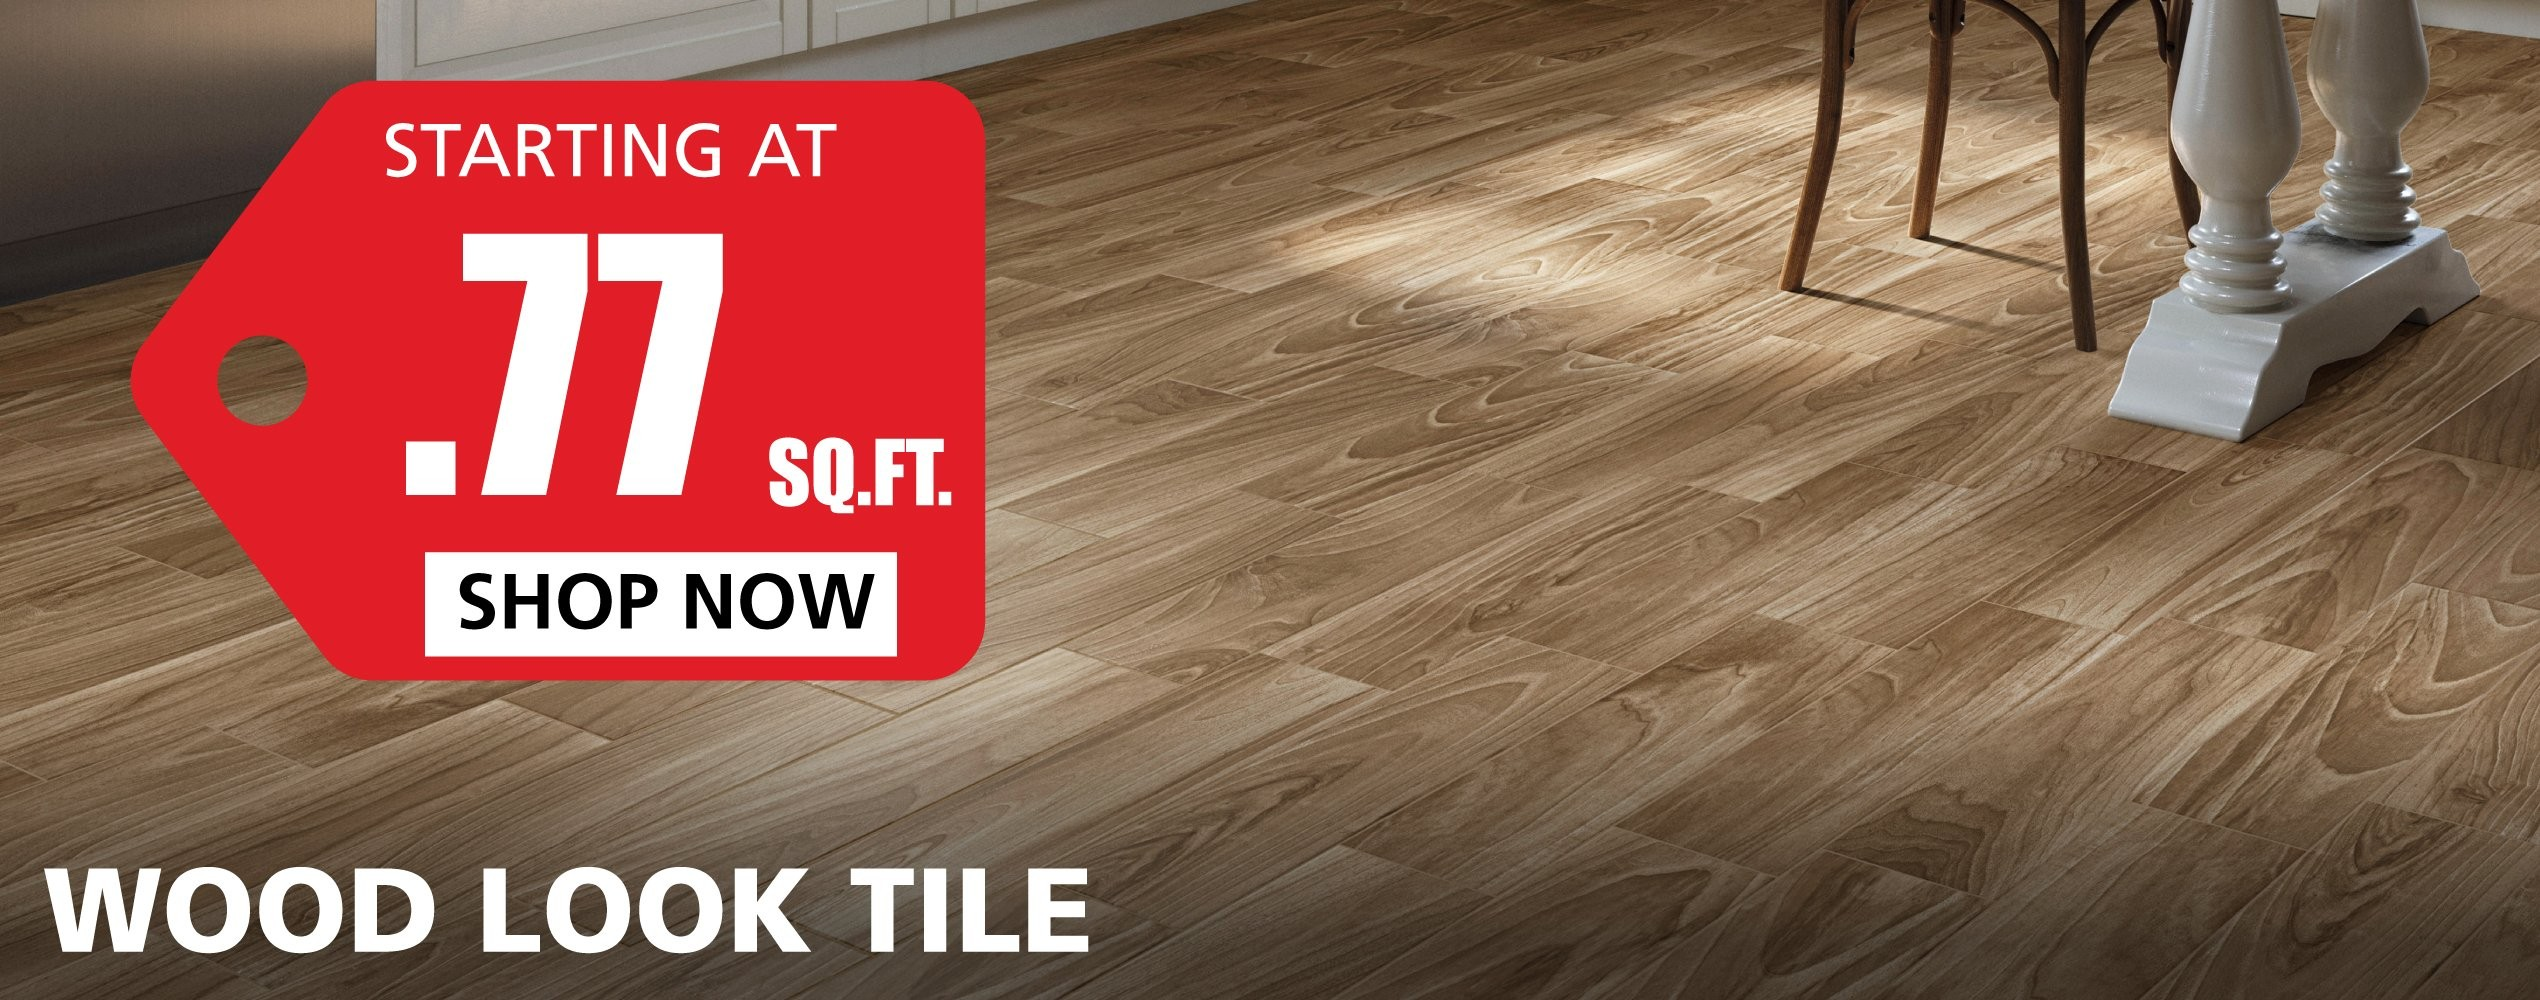 Wood-Look Tile starting at $0.77 per square foot